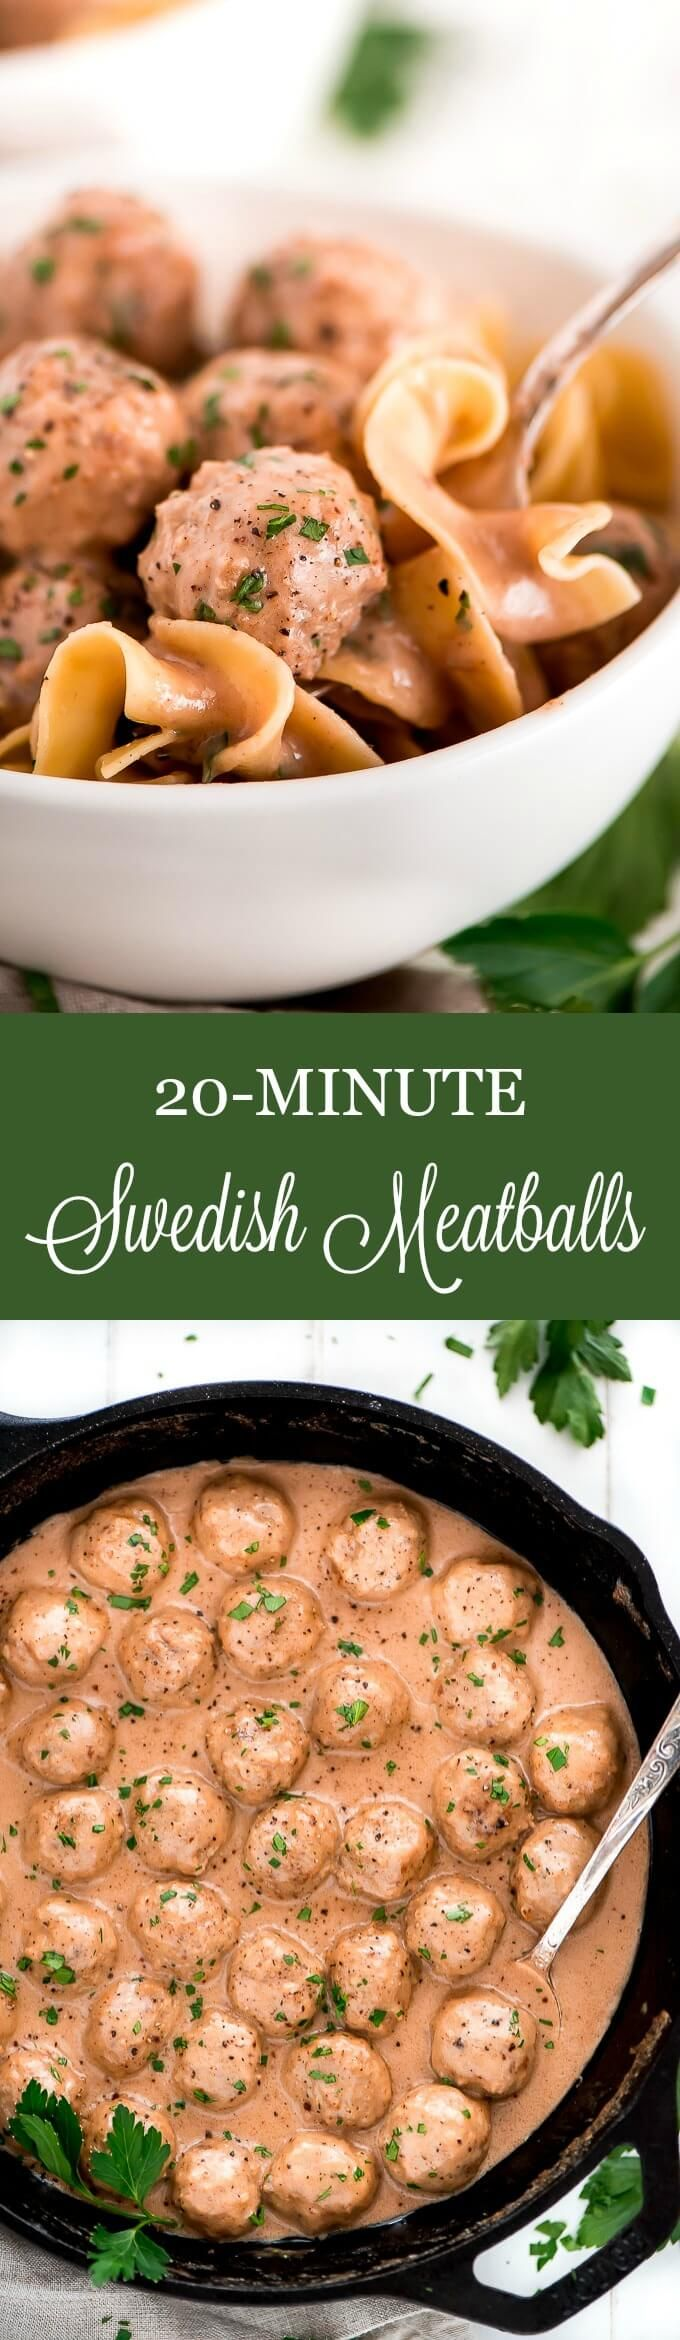 These 20-Minute Swedish Meatballs are the perfect easy and effortless dish for a quick meal for the family or an at-home-dinner date. #meatballs #easydinner #FarmRich @FarmRichSnacks